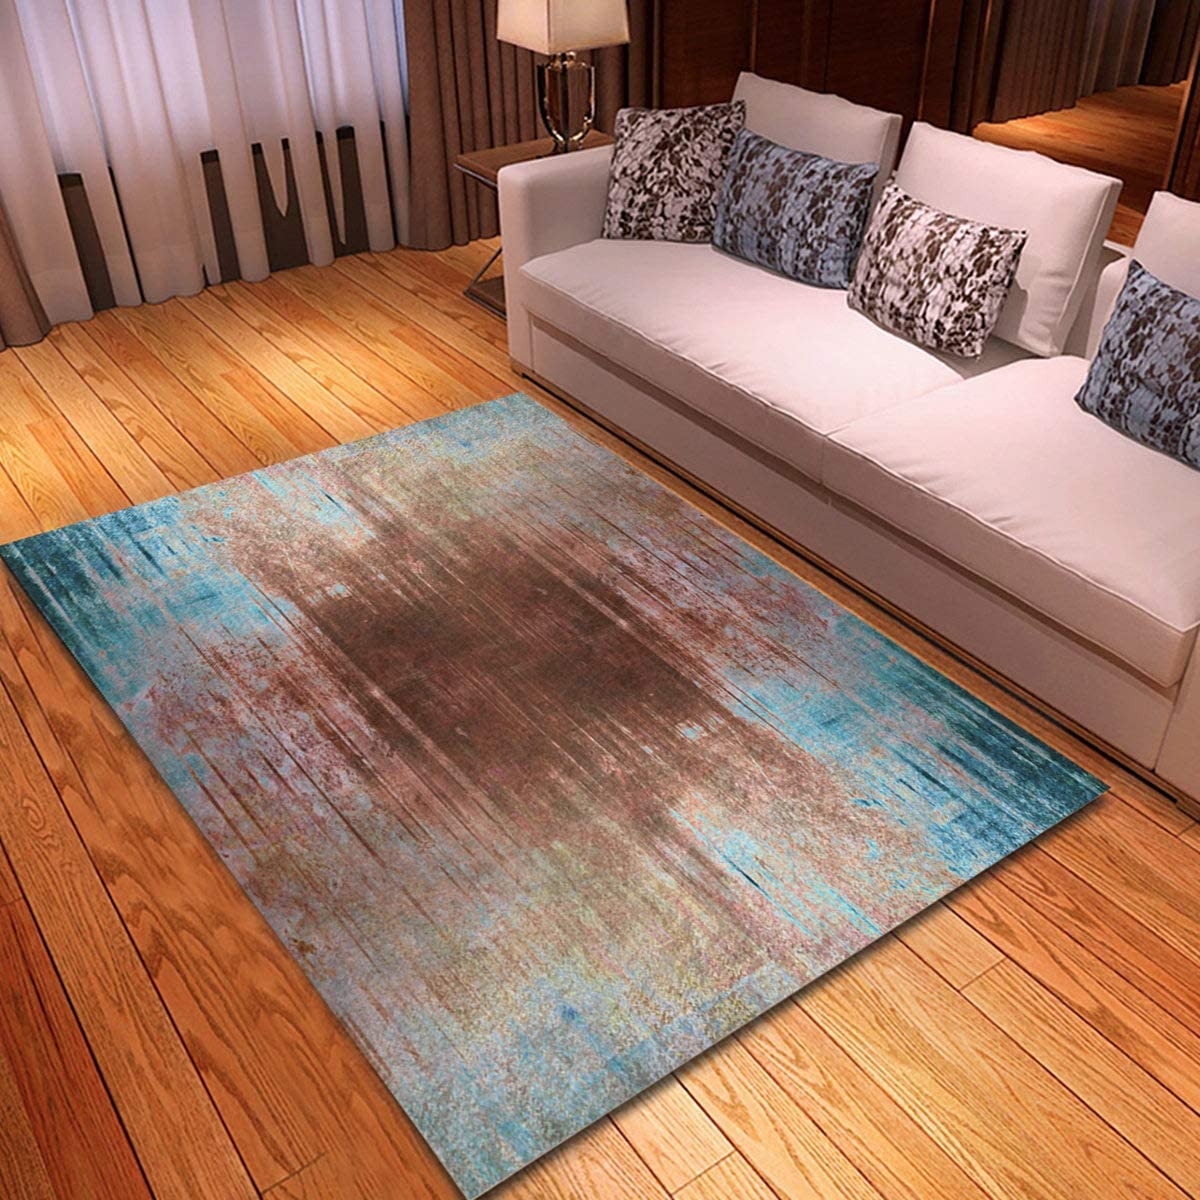 rouihot Non-Slip Excellence Area Rug 4'x Patter Abstract Brown Price reduction Turquoise 6'